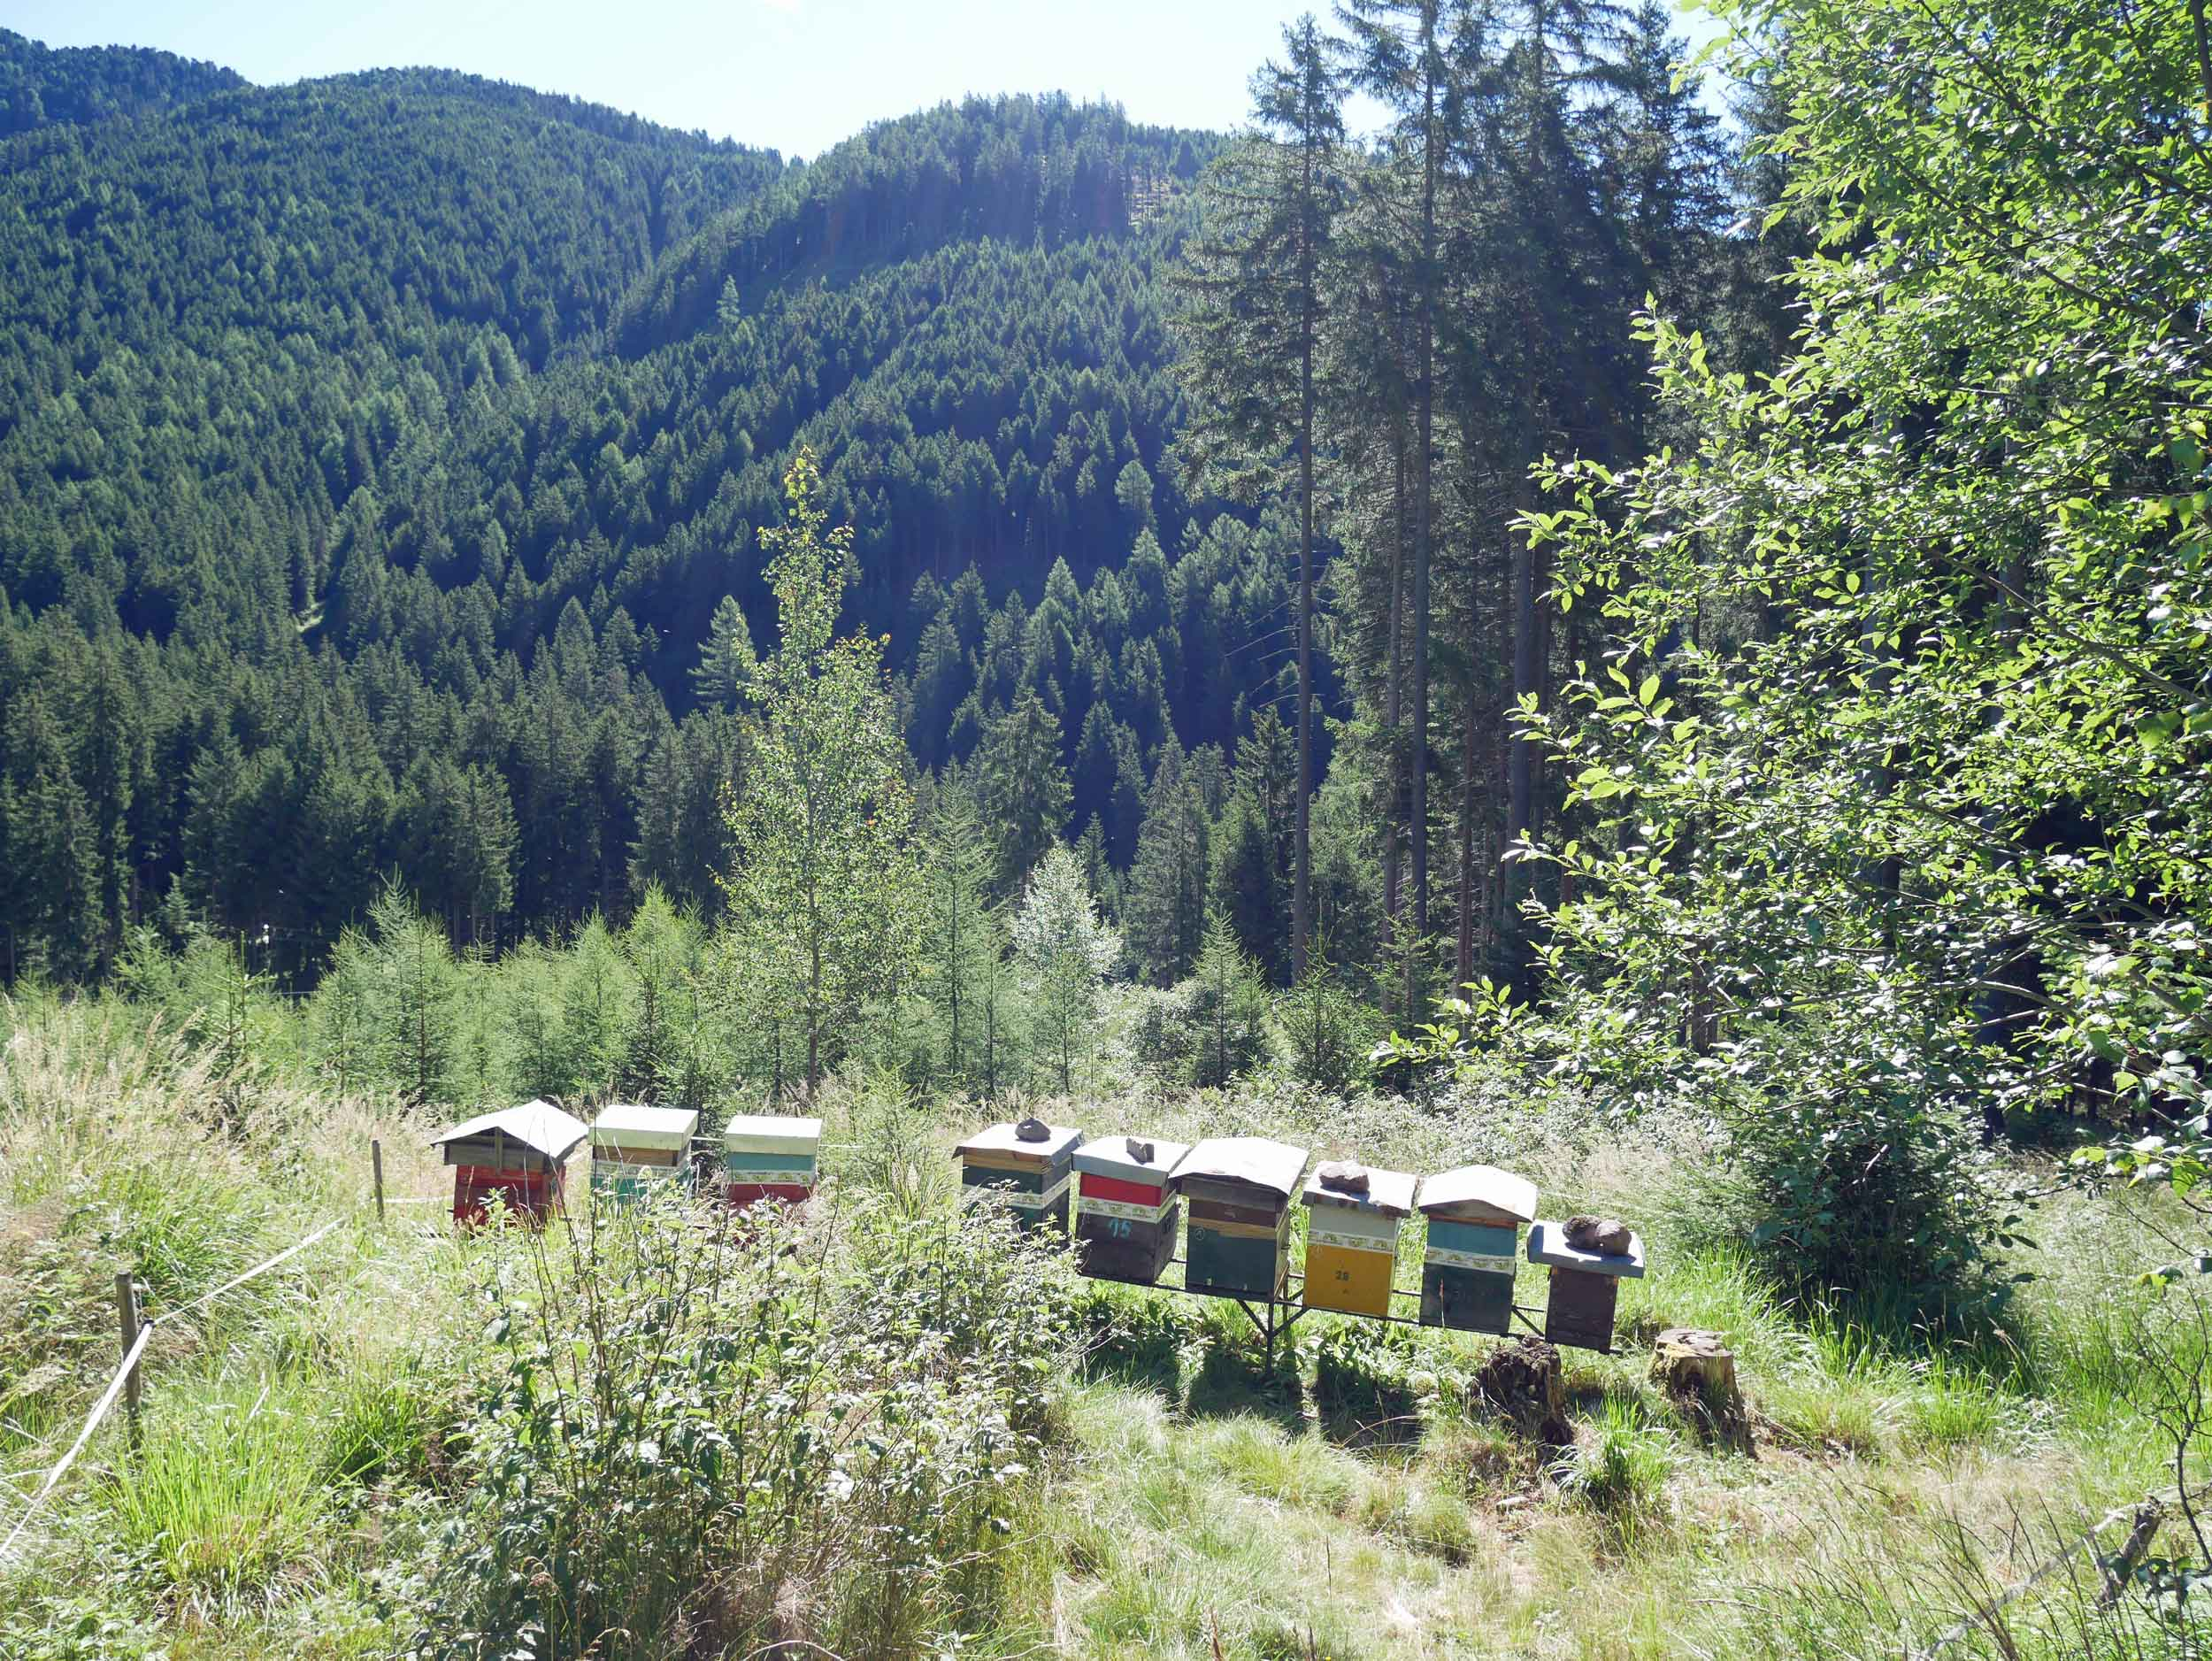 During our walk, we stumbled upon a colorful bee apiary, Martin's latest obsession. :)